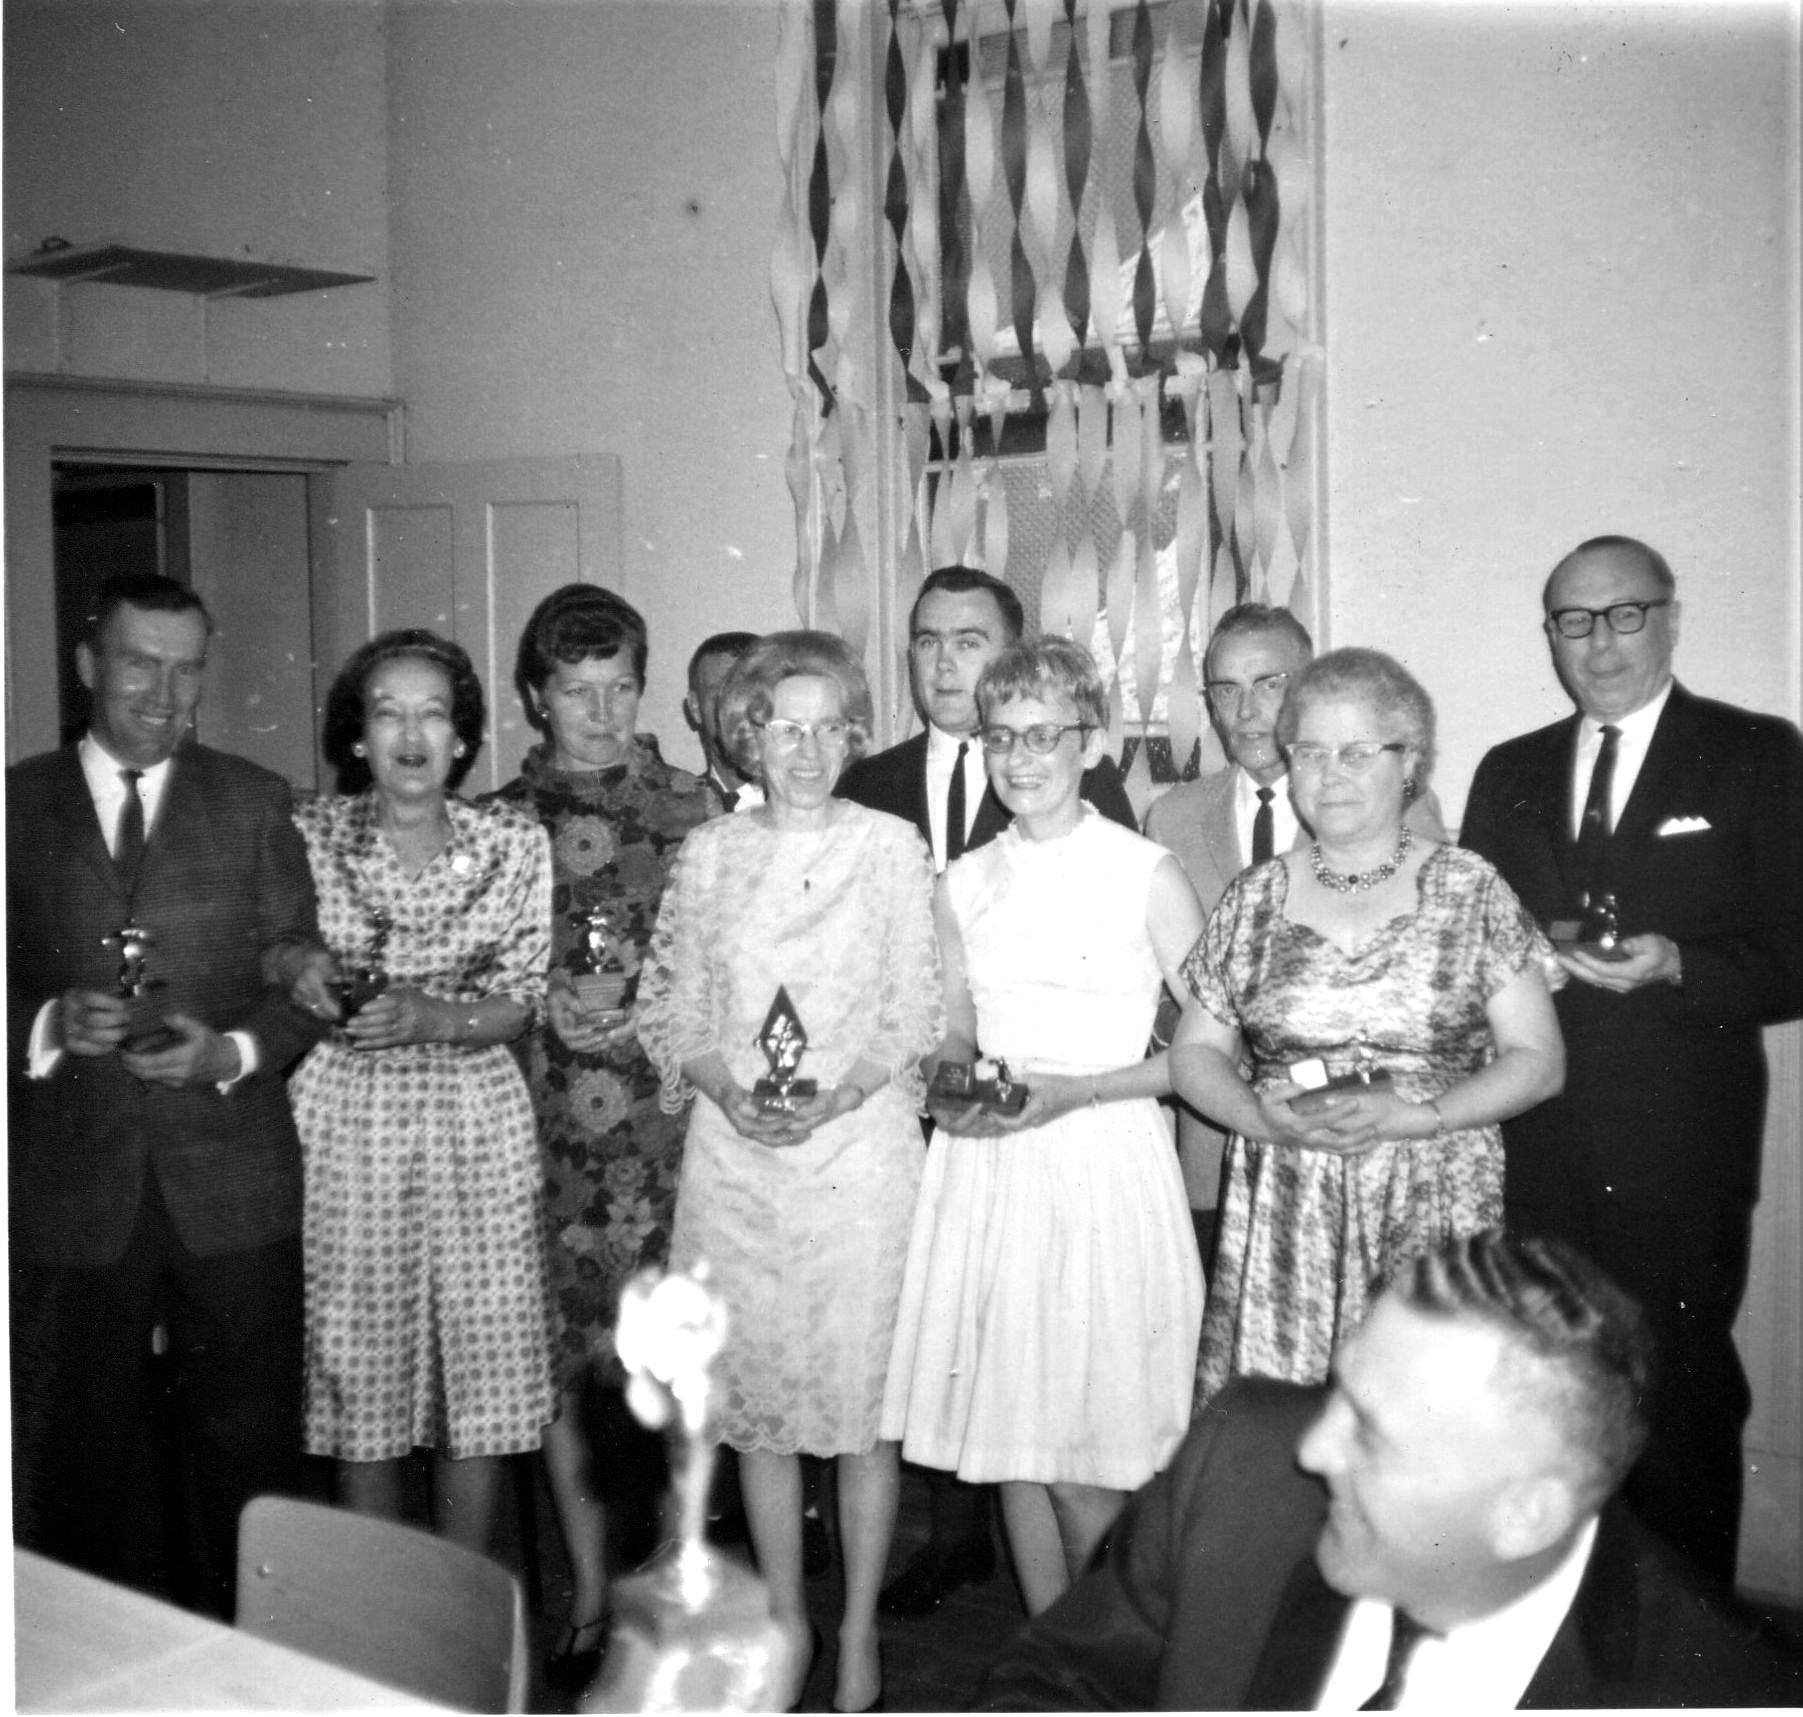 Shirley Pressick in the white dress, Bernard Doyle sitting at the table.Third from left flowered dress Isabelle Goodchild and Don Goodchild is in the back (half his head showing) Sally Jones on the Right.